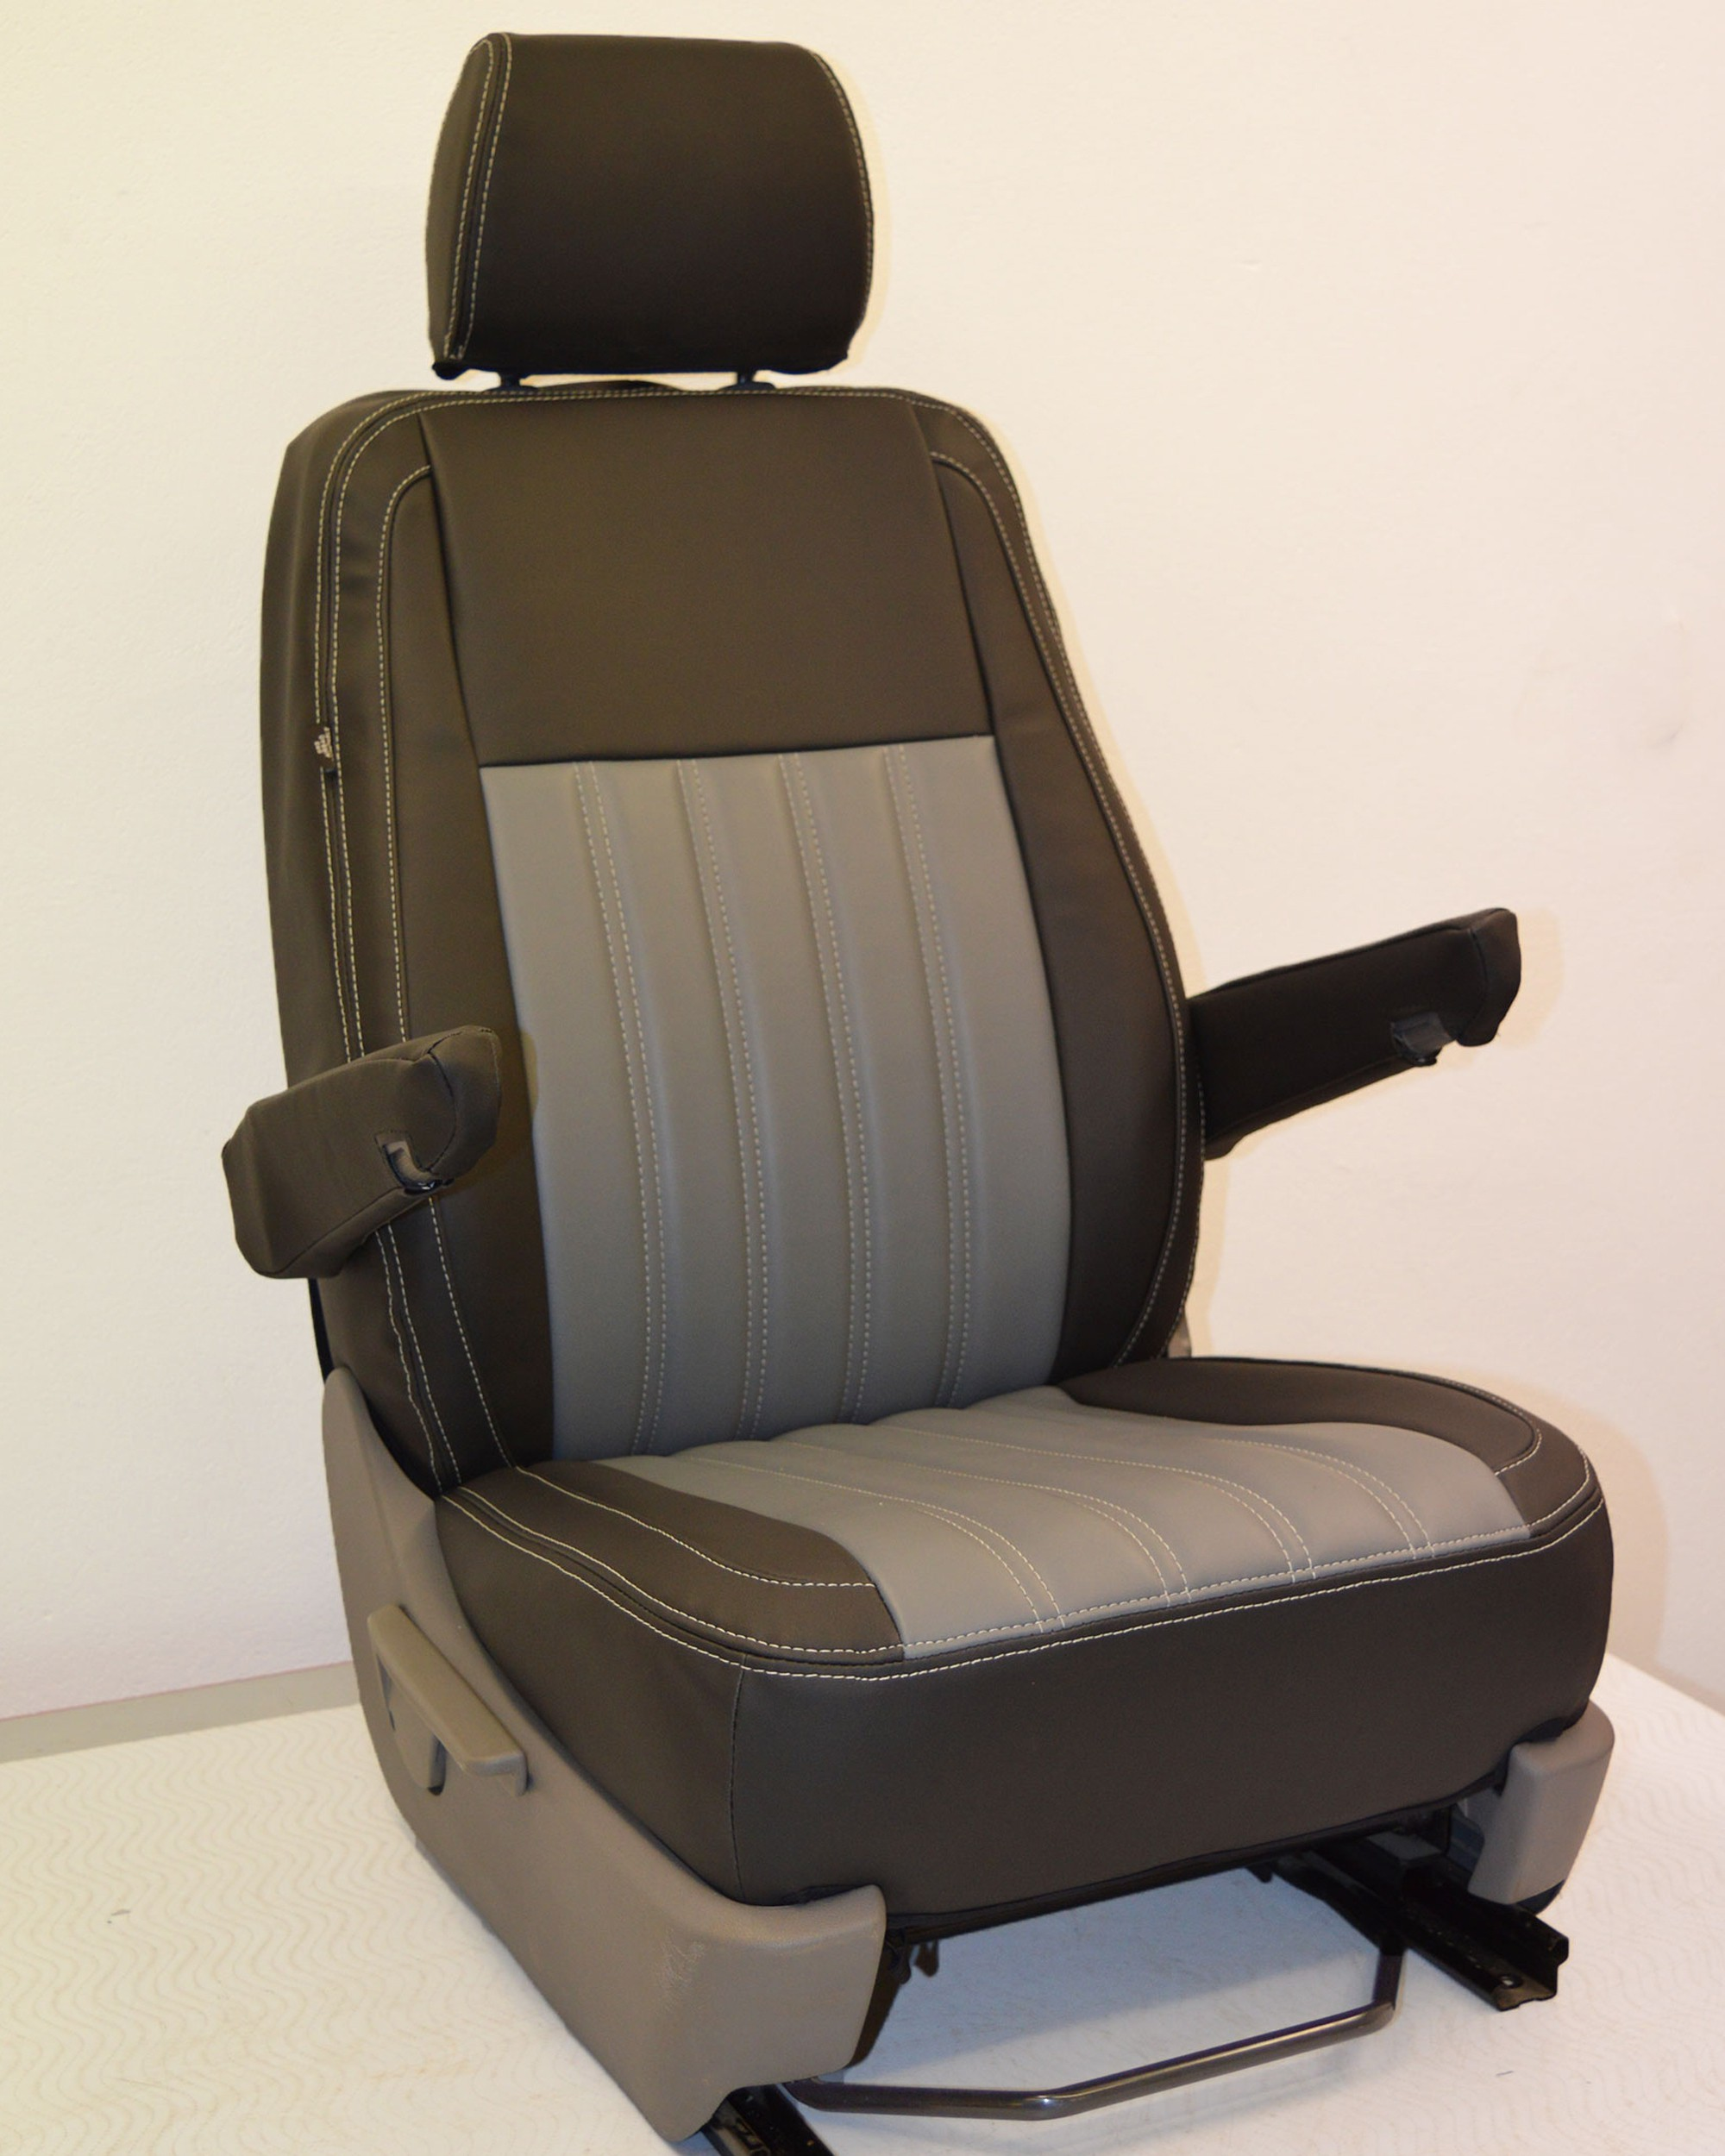 VW Transporter T5 Fluted Tailored Seat Covers